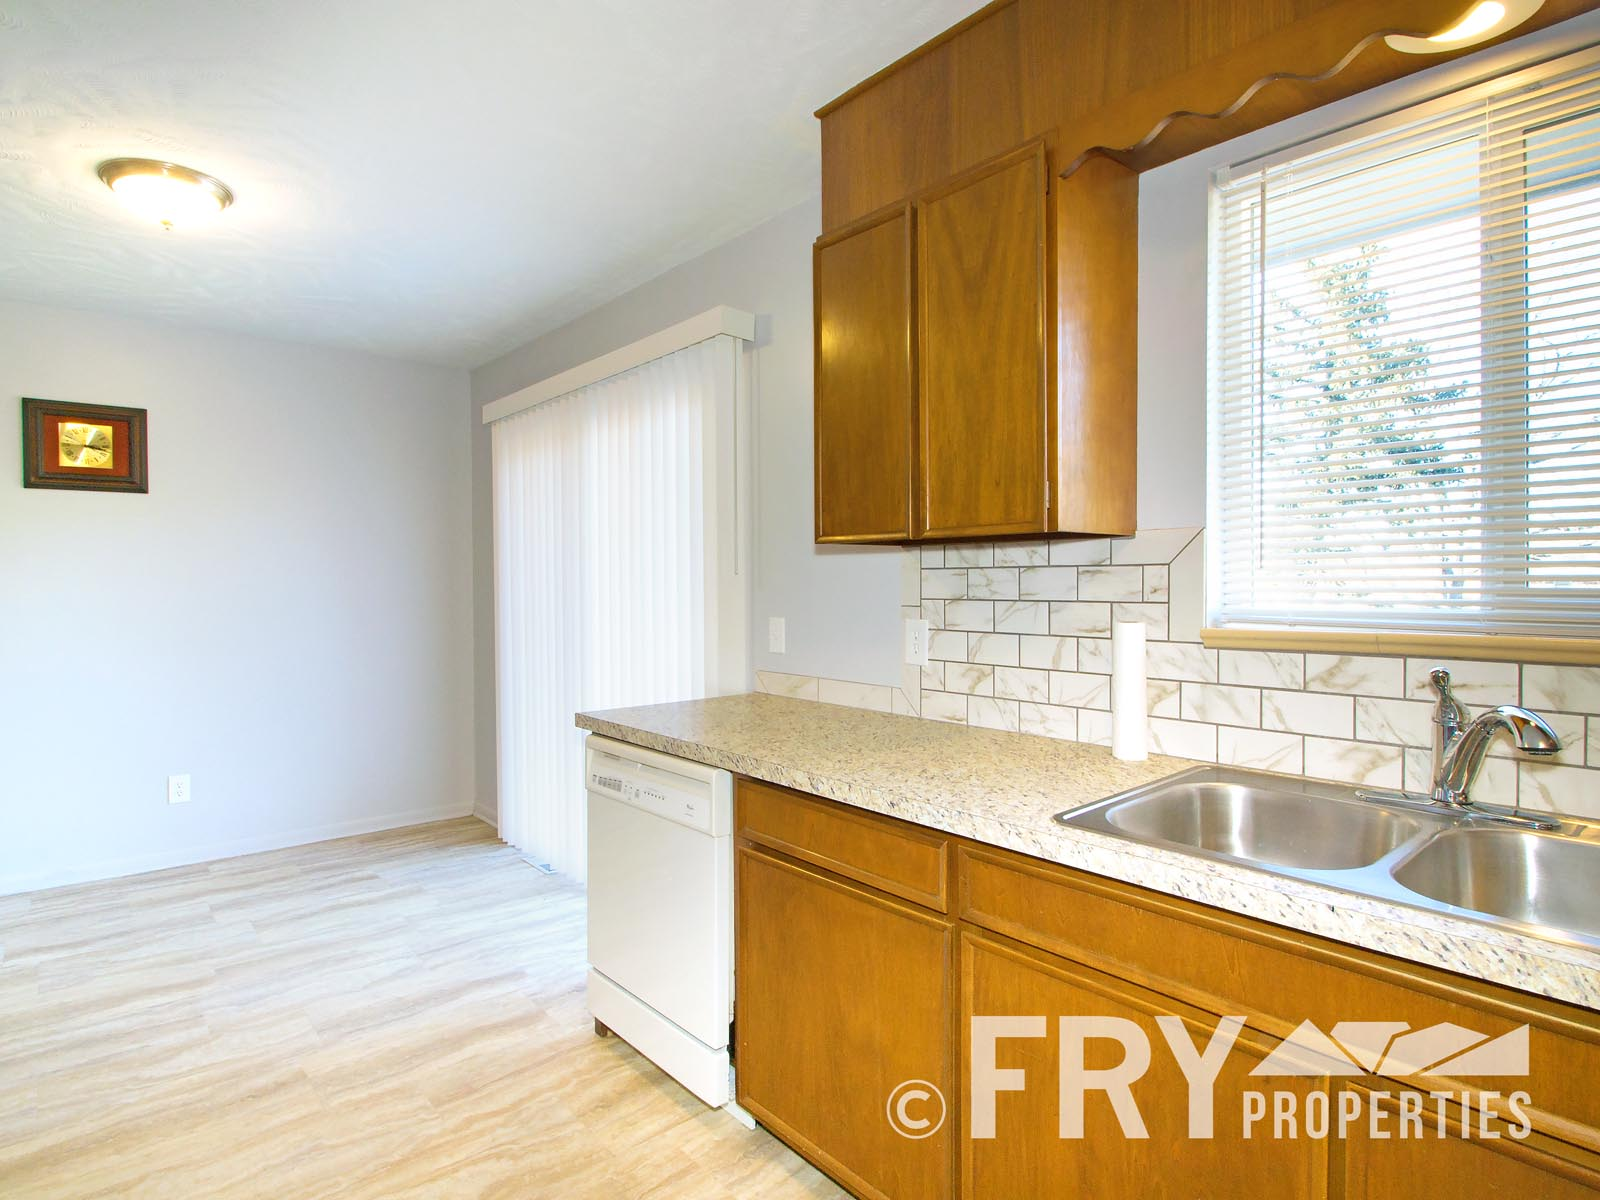 Rental 941 W 79th Pl Fry Properties